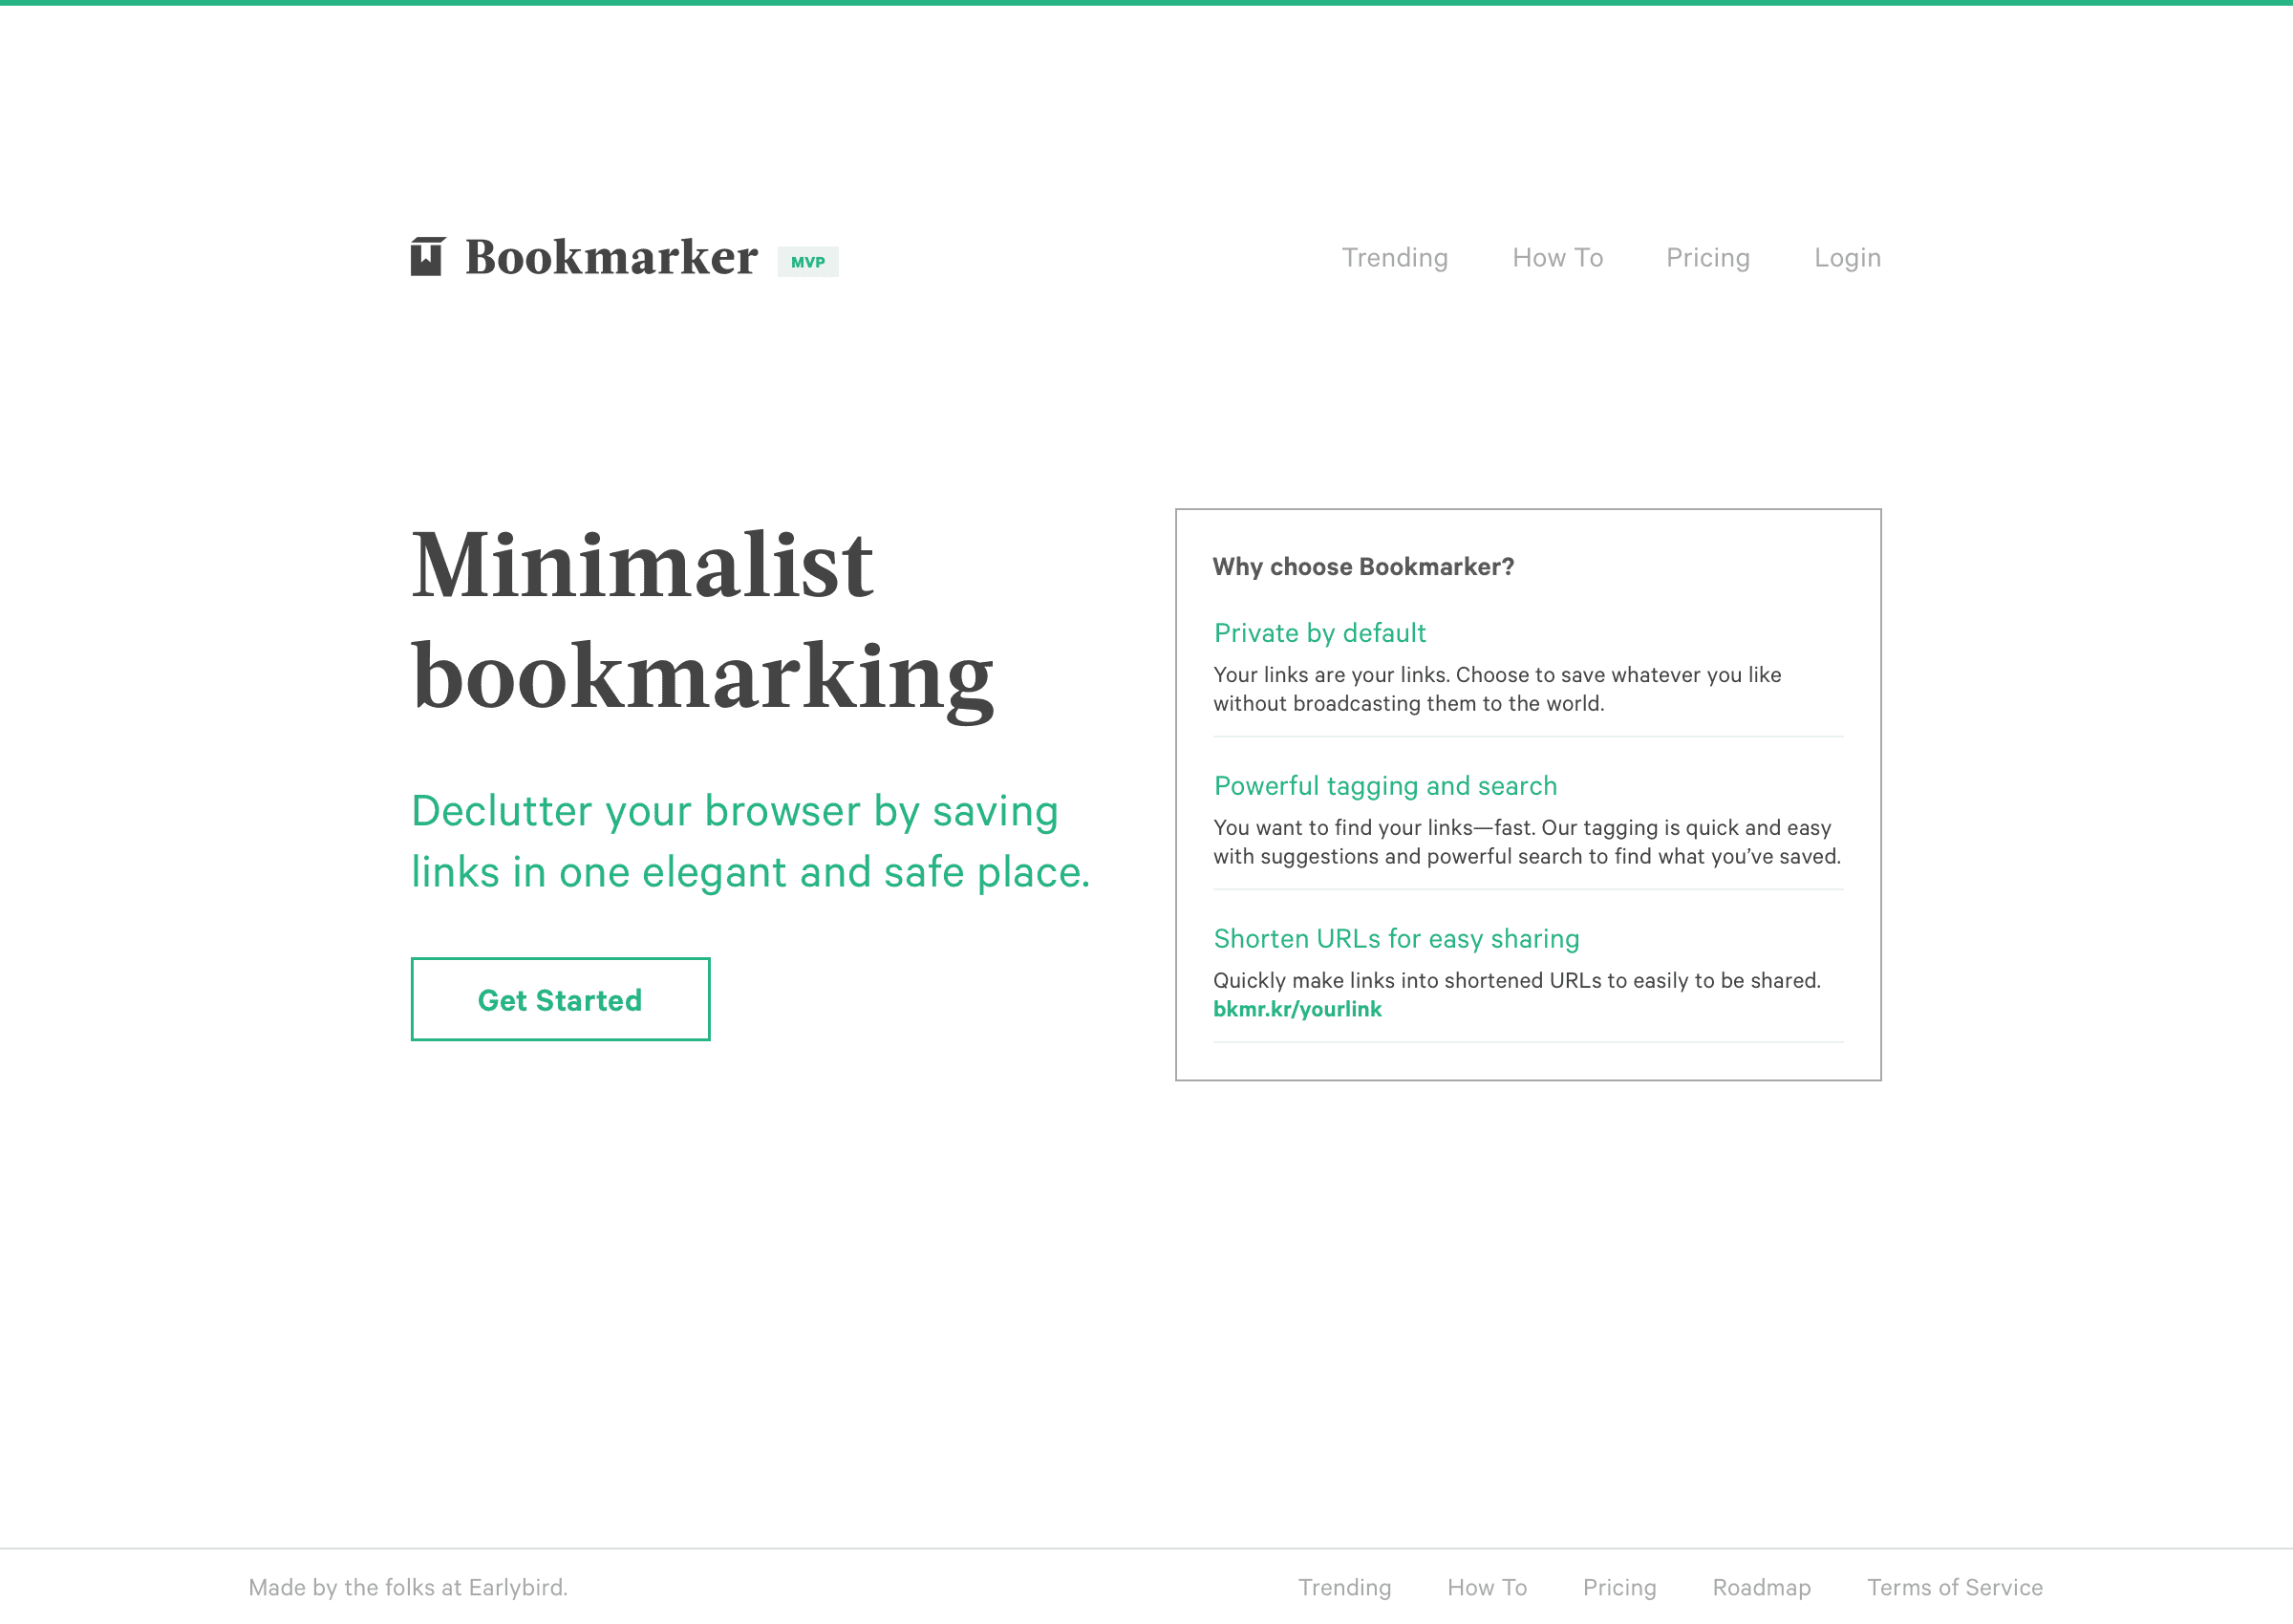 Screenshot of the landing page for Bookmarker